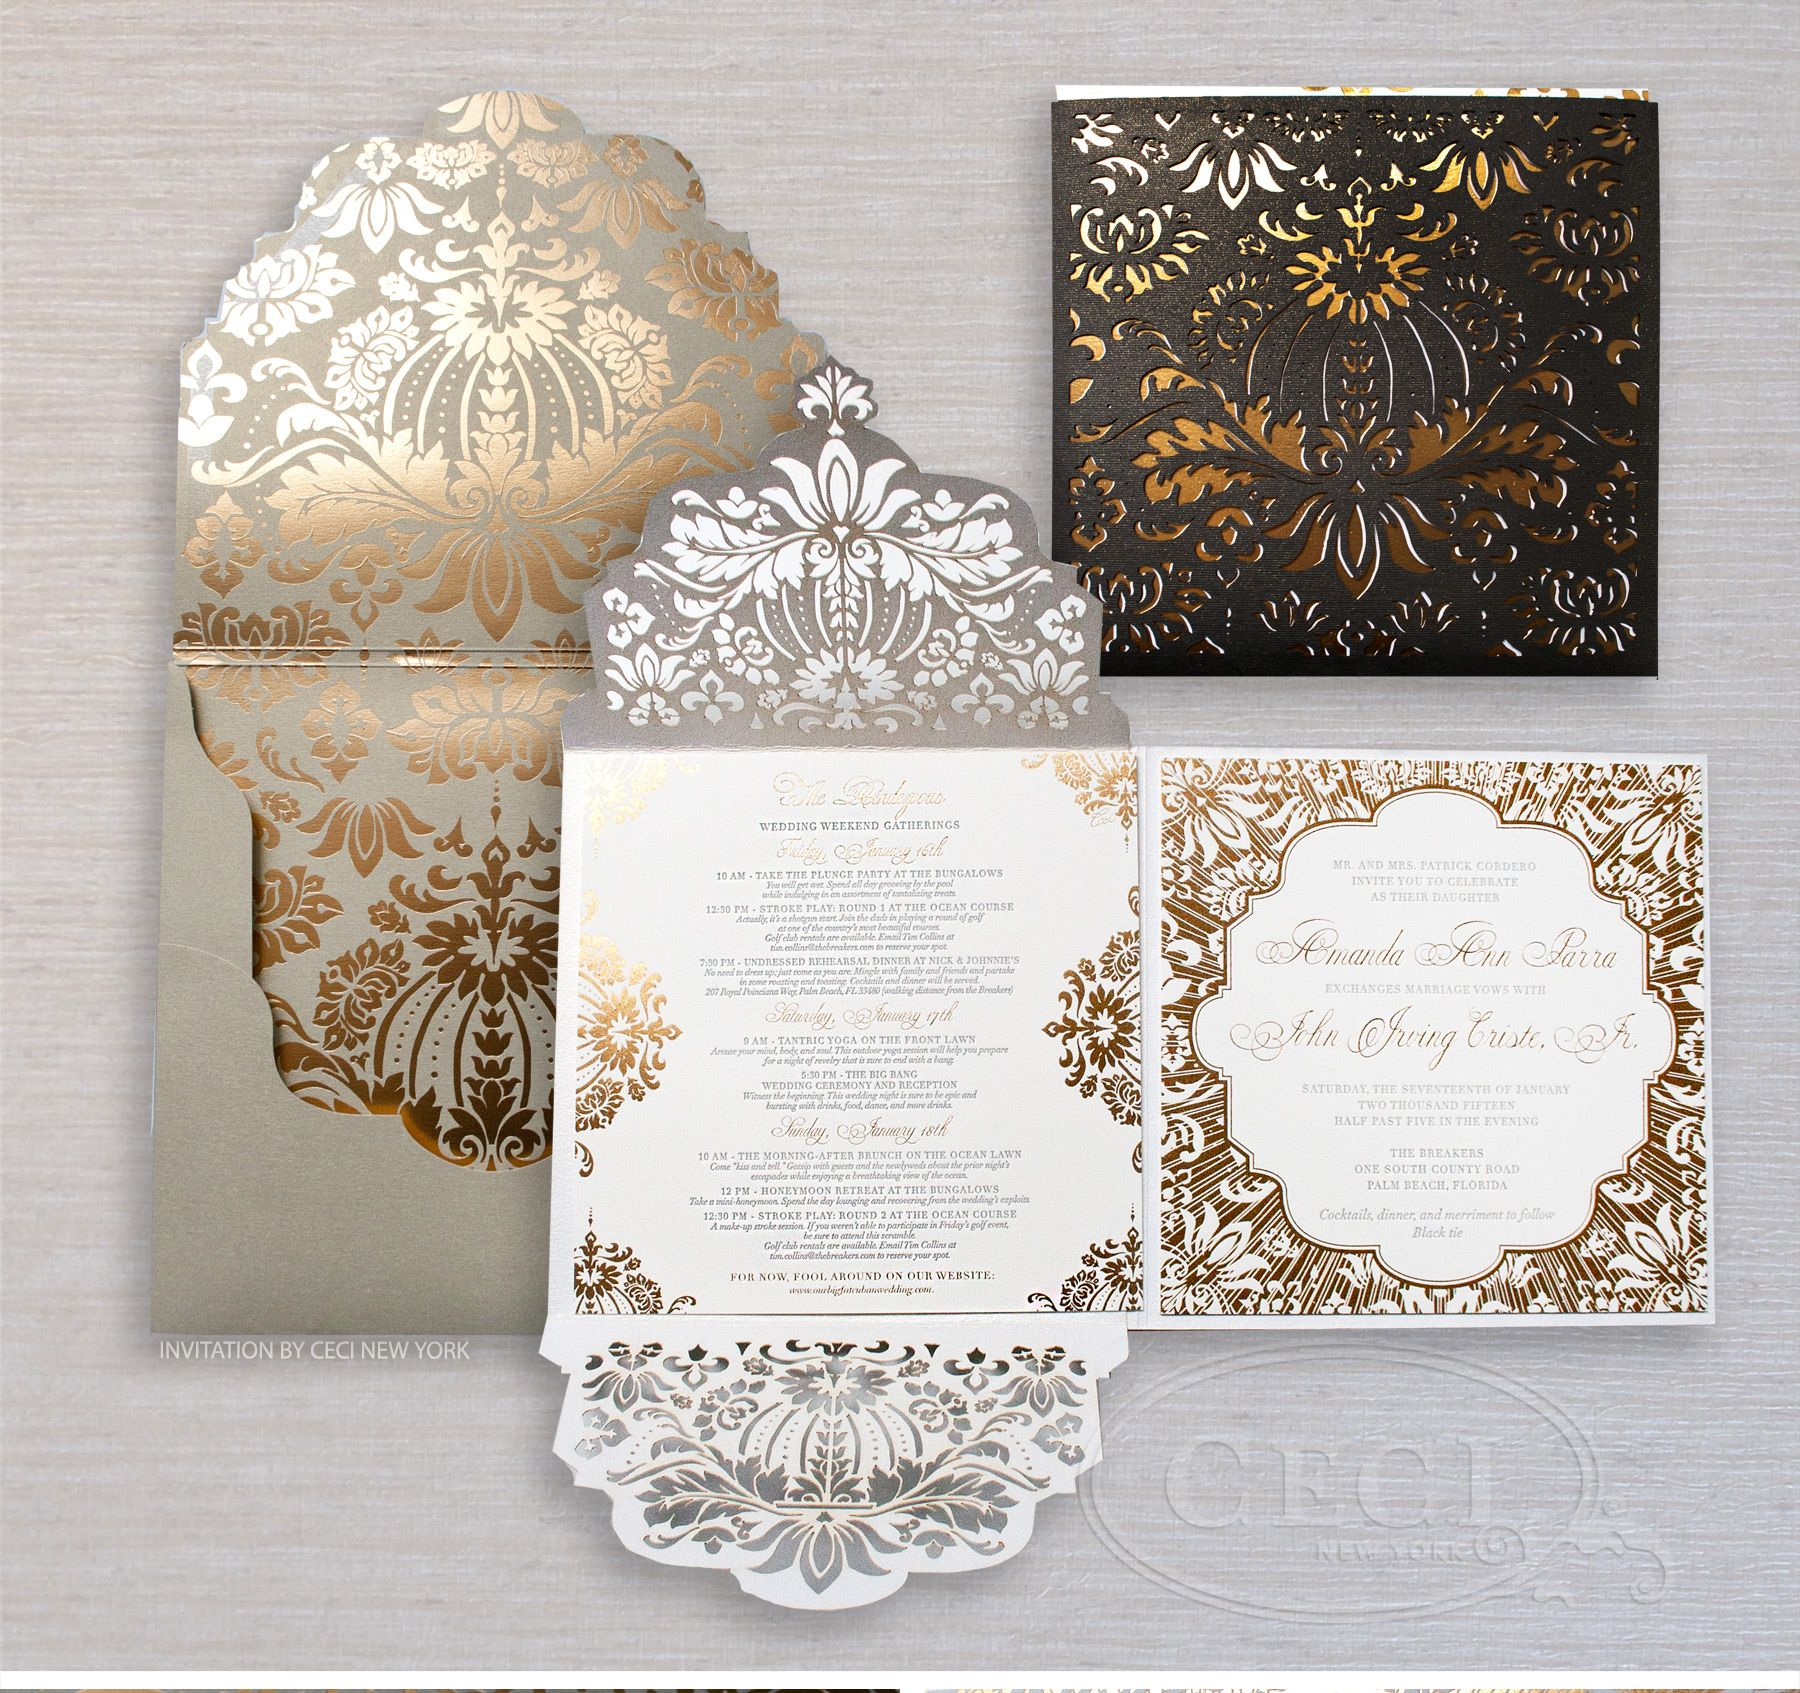 wedding card invitation Luxury Wedding Invitations by Ceci New York Our Muse Gold and Black Wedding at